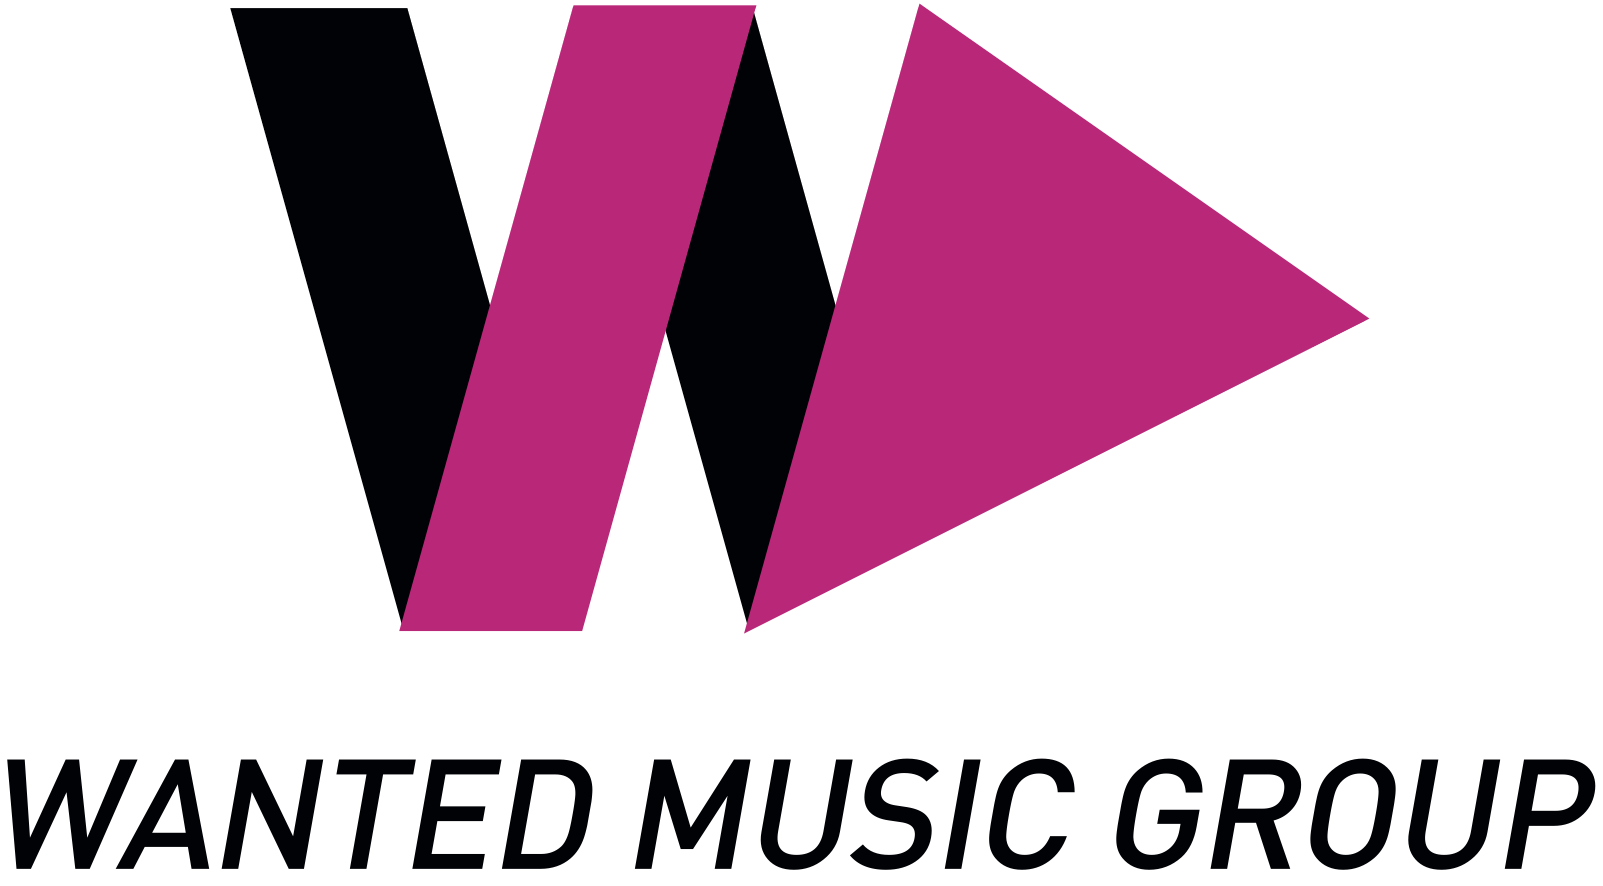 WANTED MUSIC GROUP